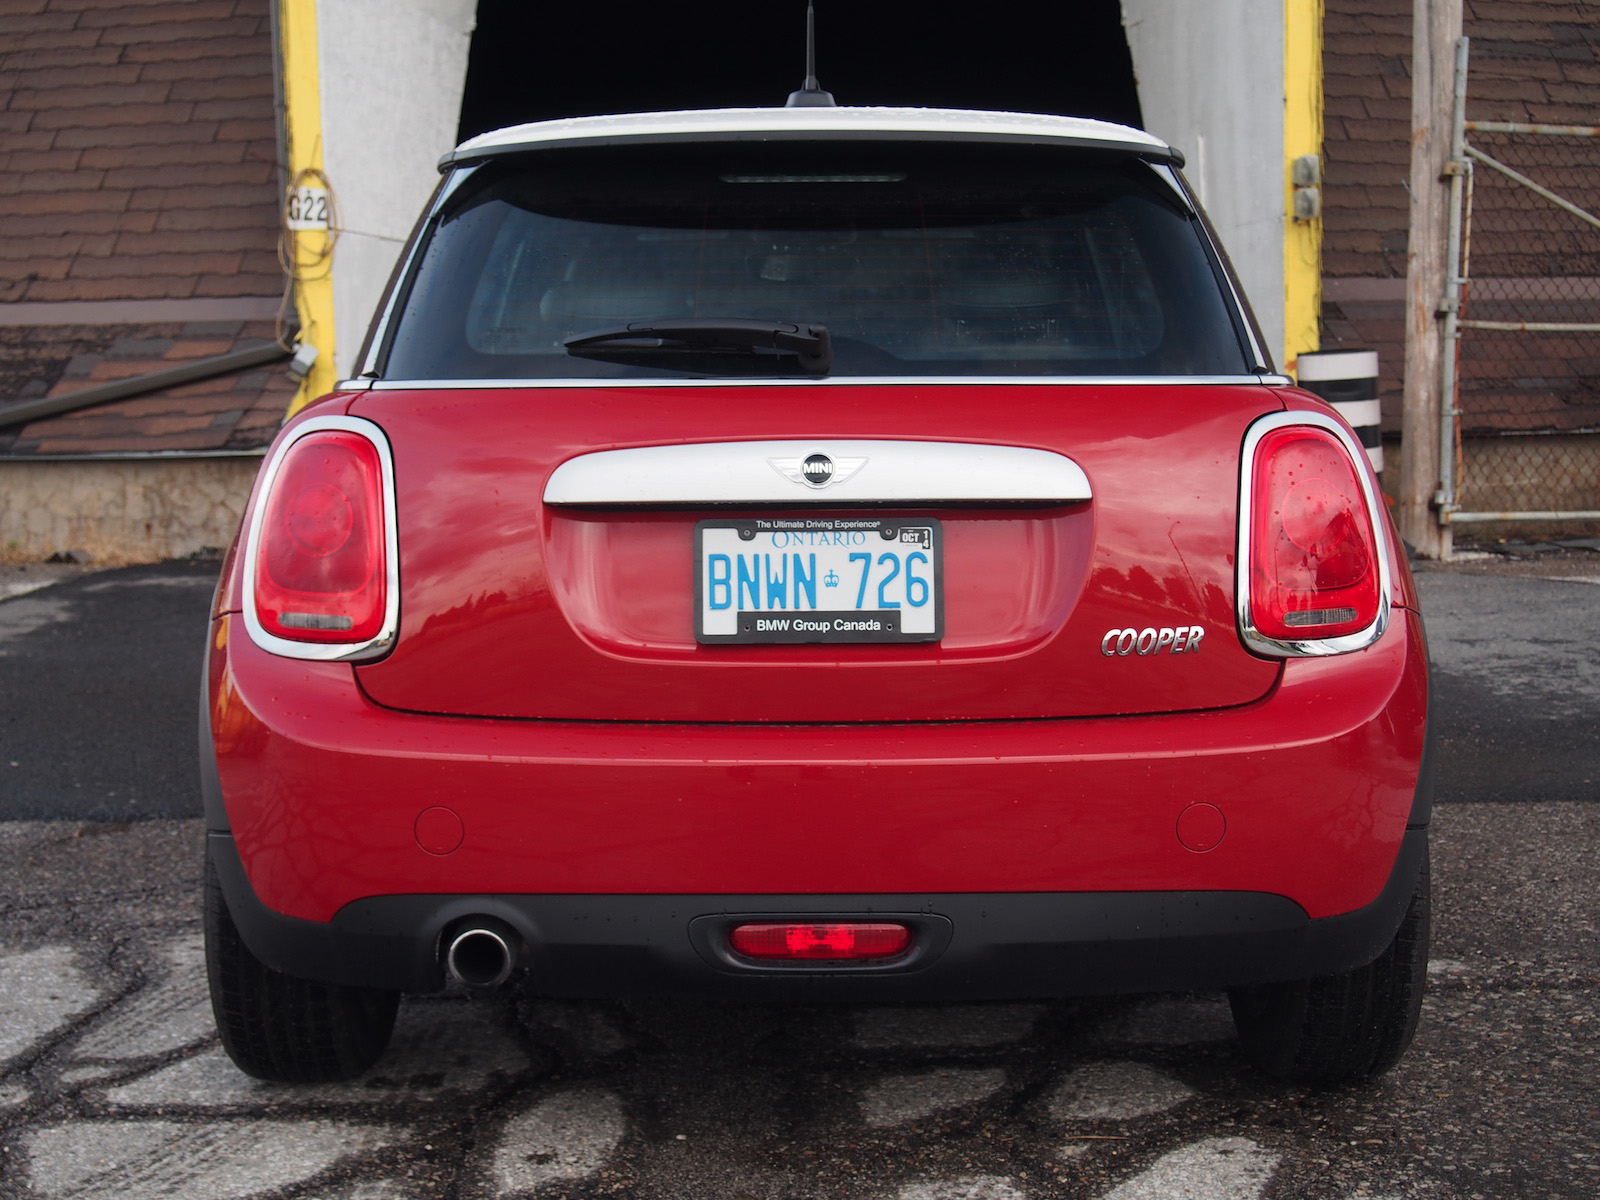 2014 Mini Cooper Hatchback Review Cars Photos Test Drives And